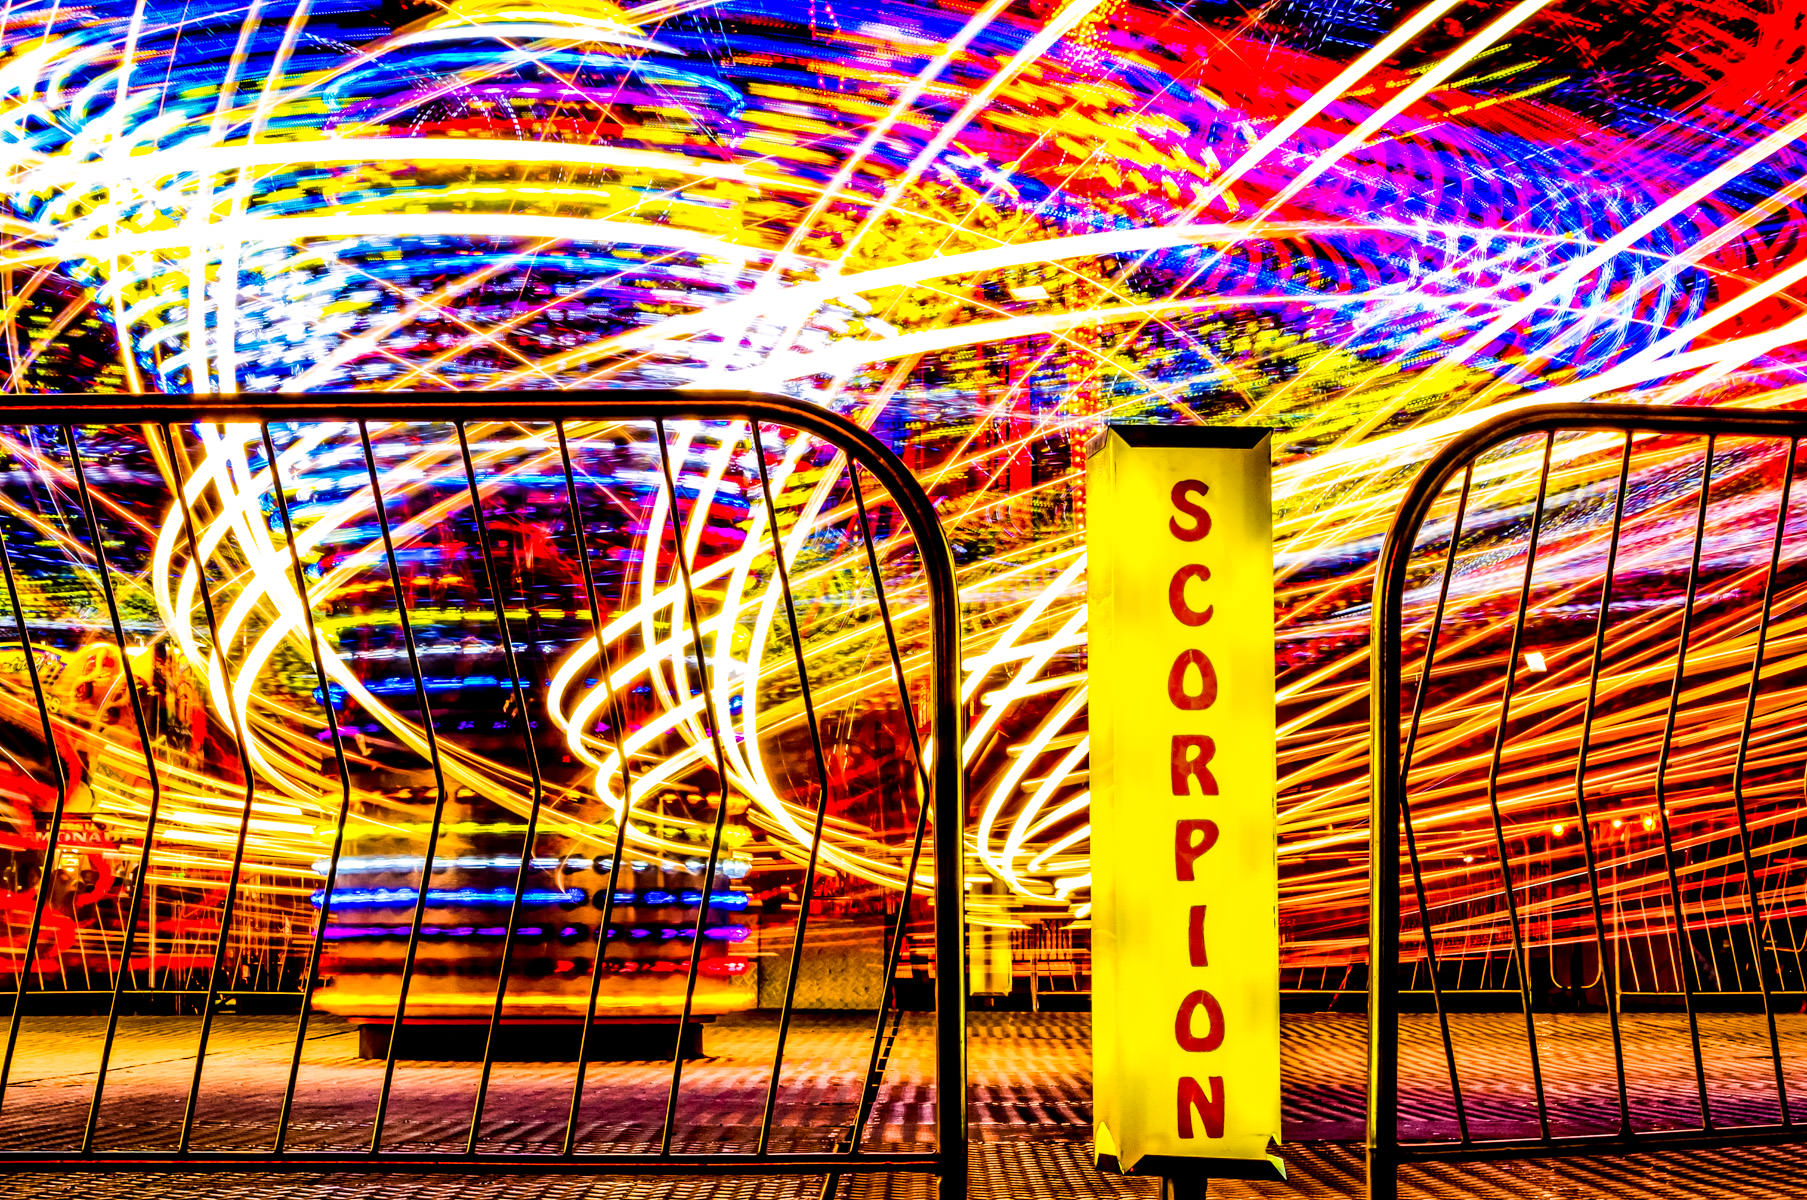 A long-exposure shot of a carnival ride at Addison Oktoberfest, Addison, Texas.